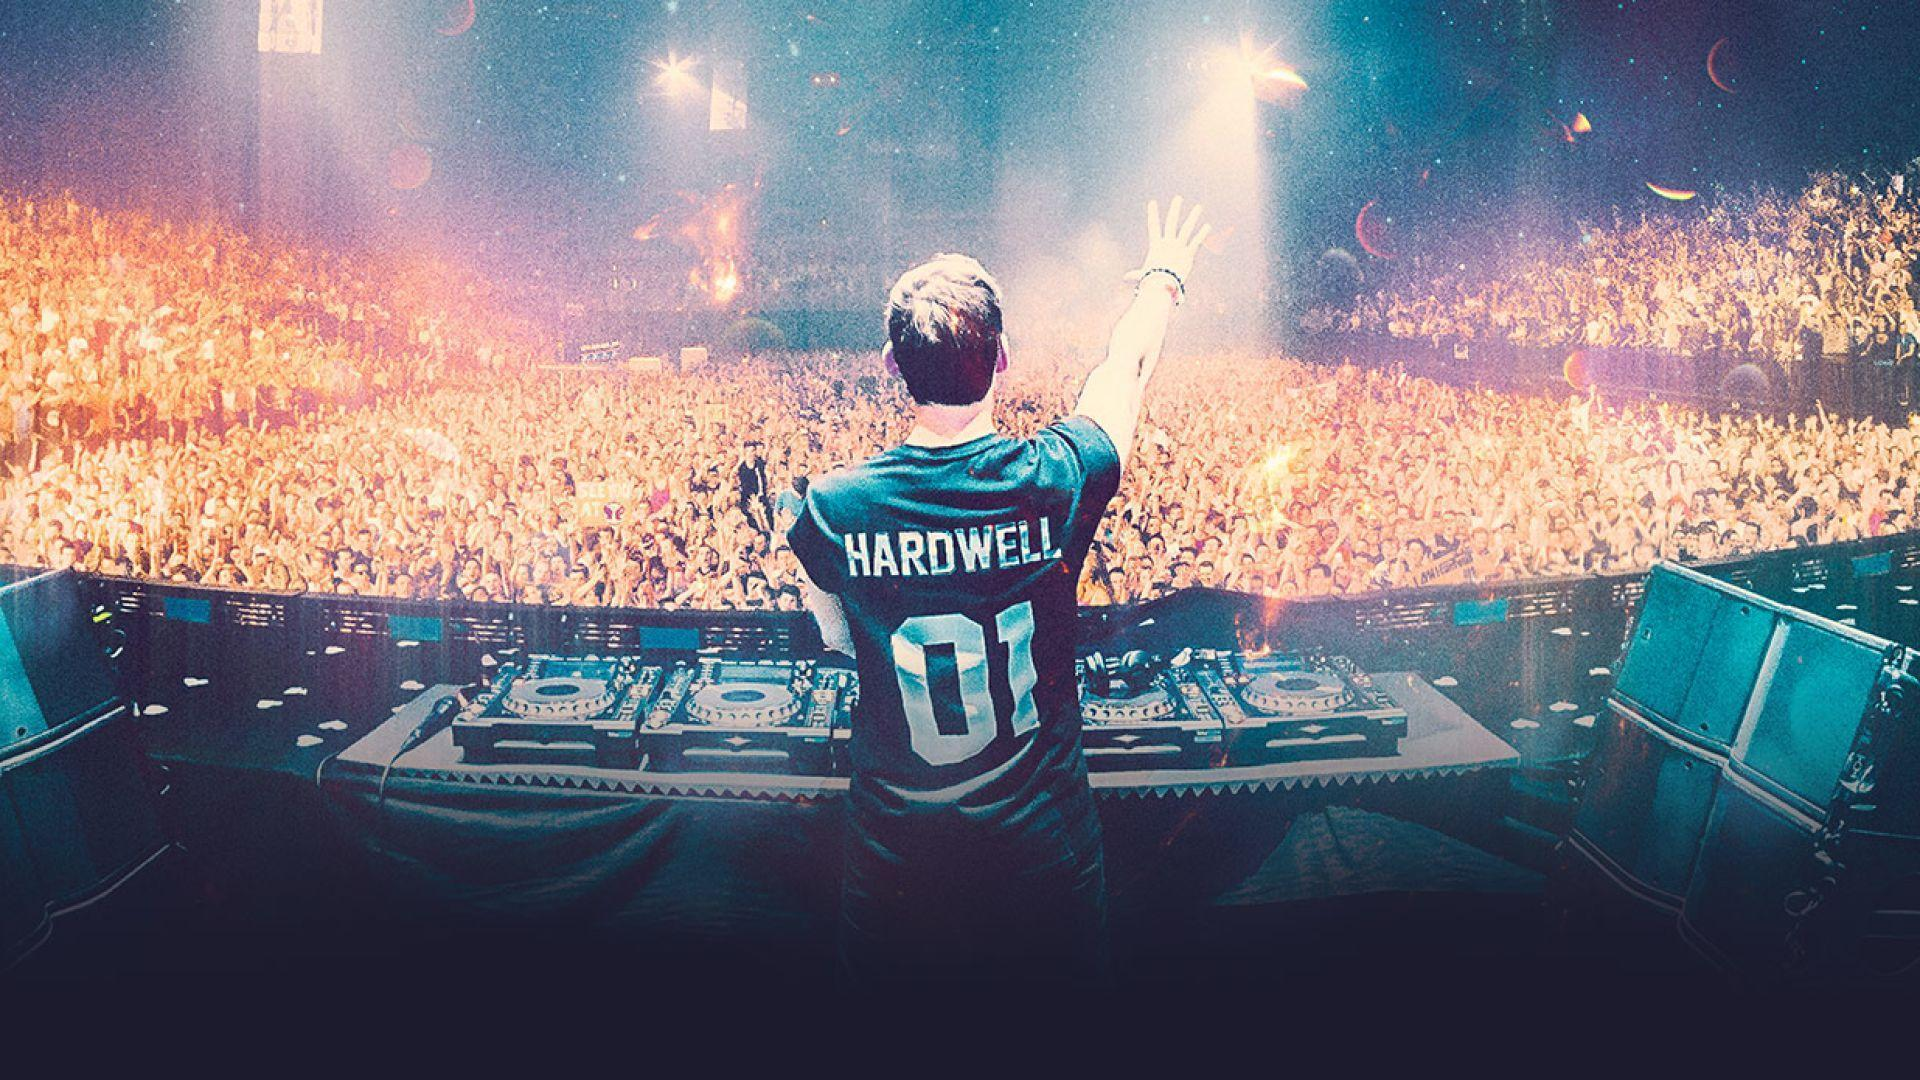 I AM Hardwell - United We Are Live Wallpaper and ... |I Am Hardwell Wallpaper